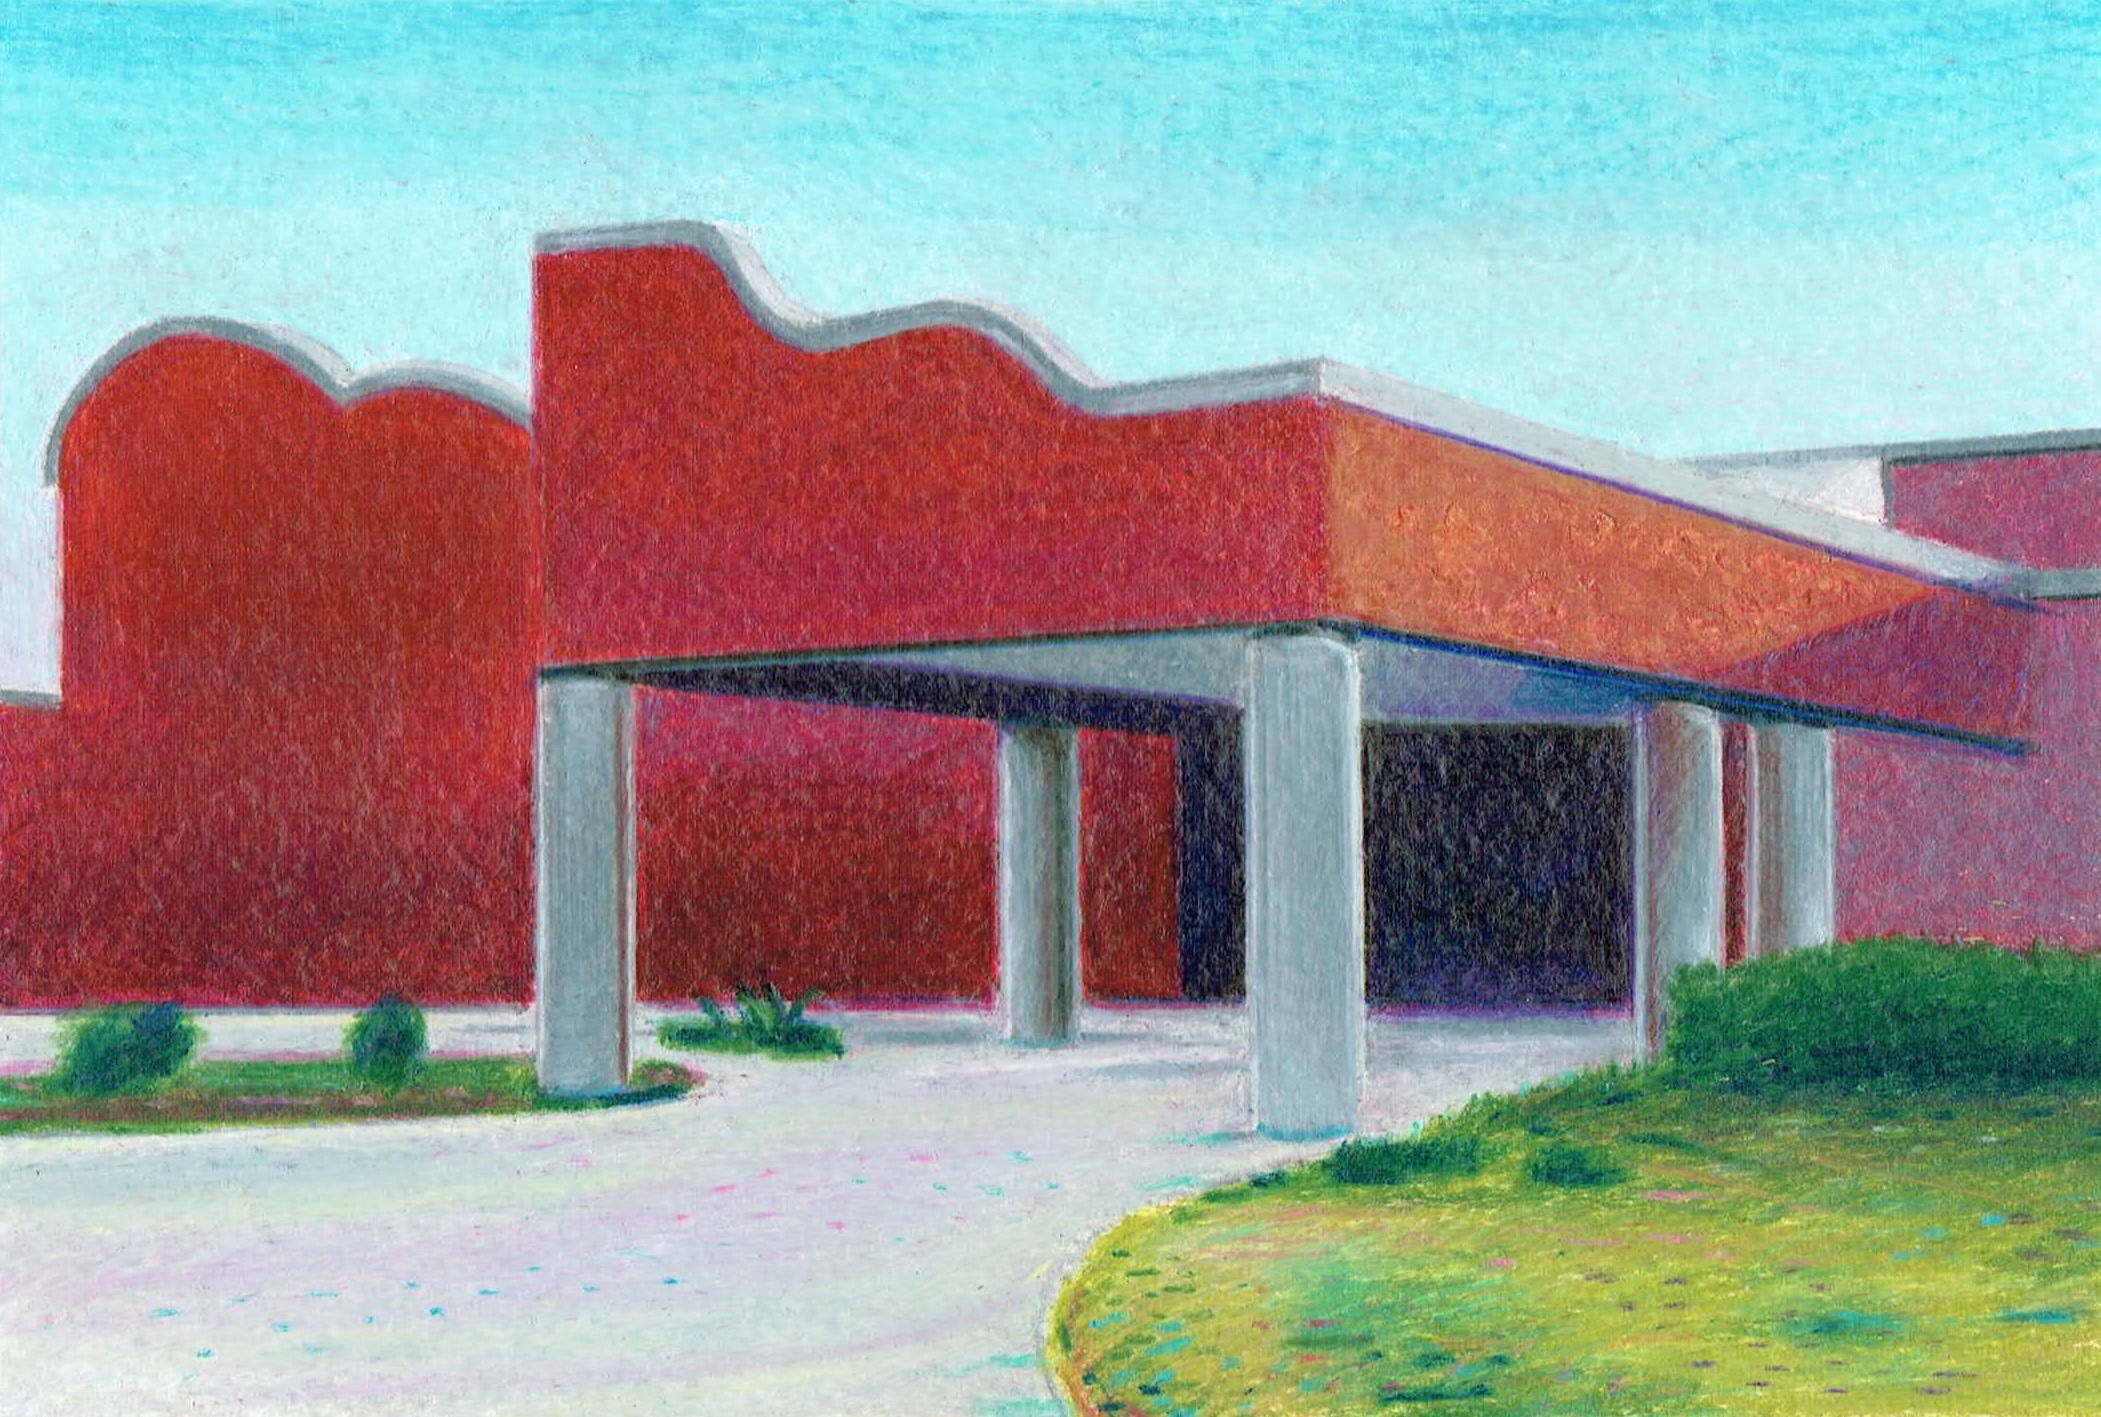 Red Lake High School, Pencil and Crayon on Paper, 12 x 18 cm, 2015 Robert Priseman